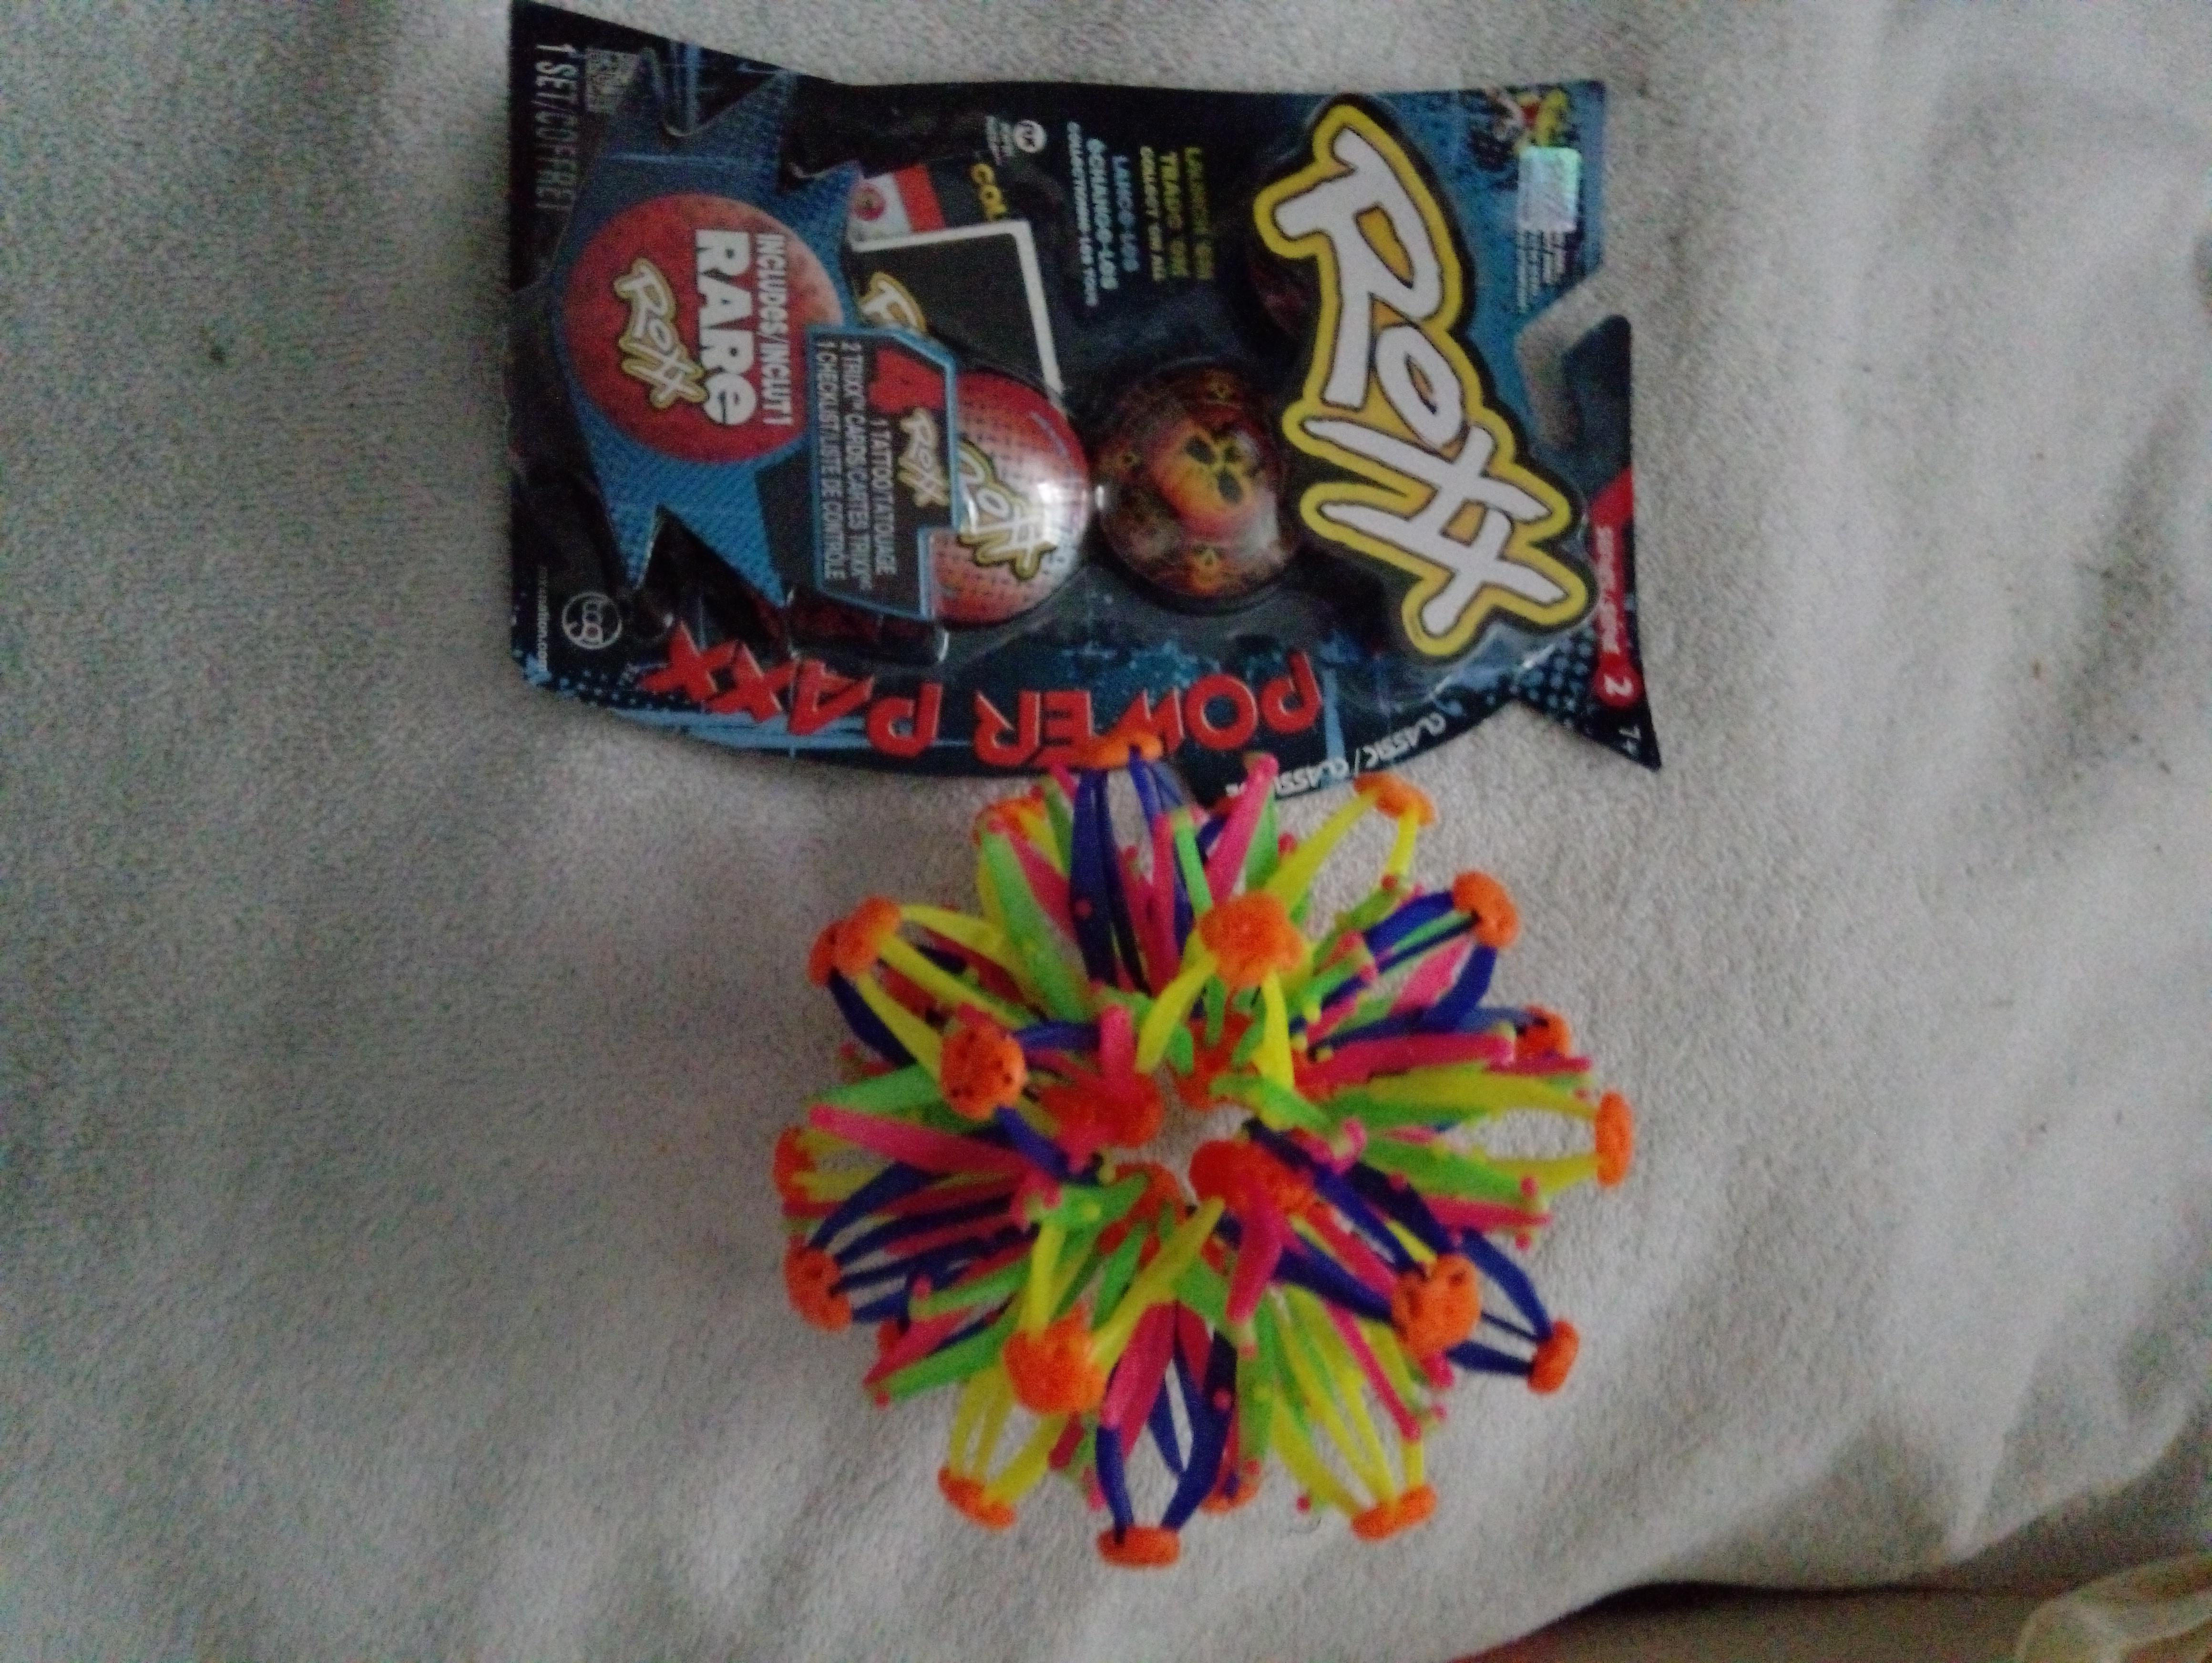 Coloured ball and roxx toy